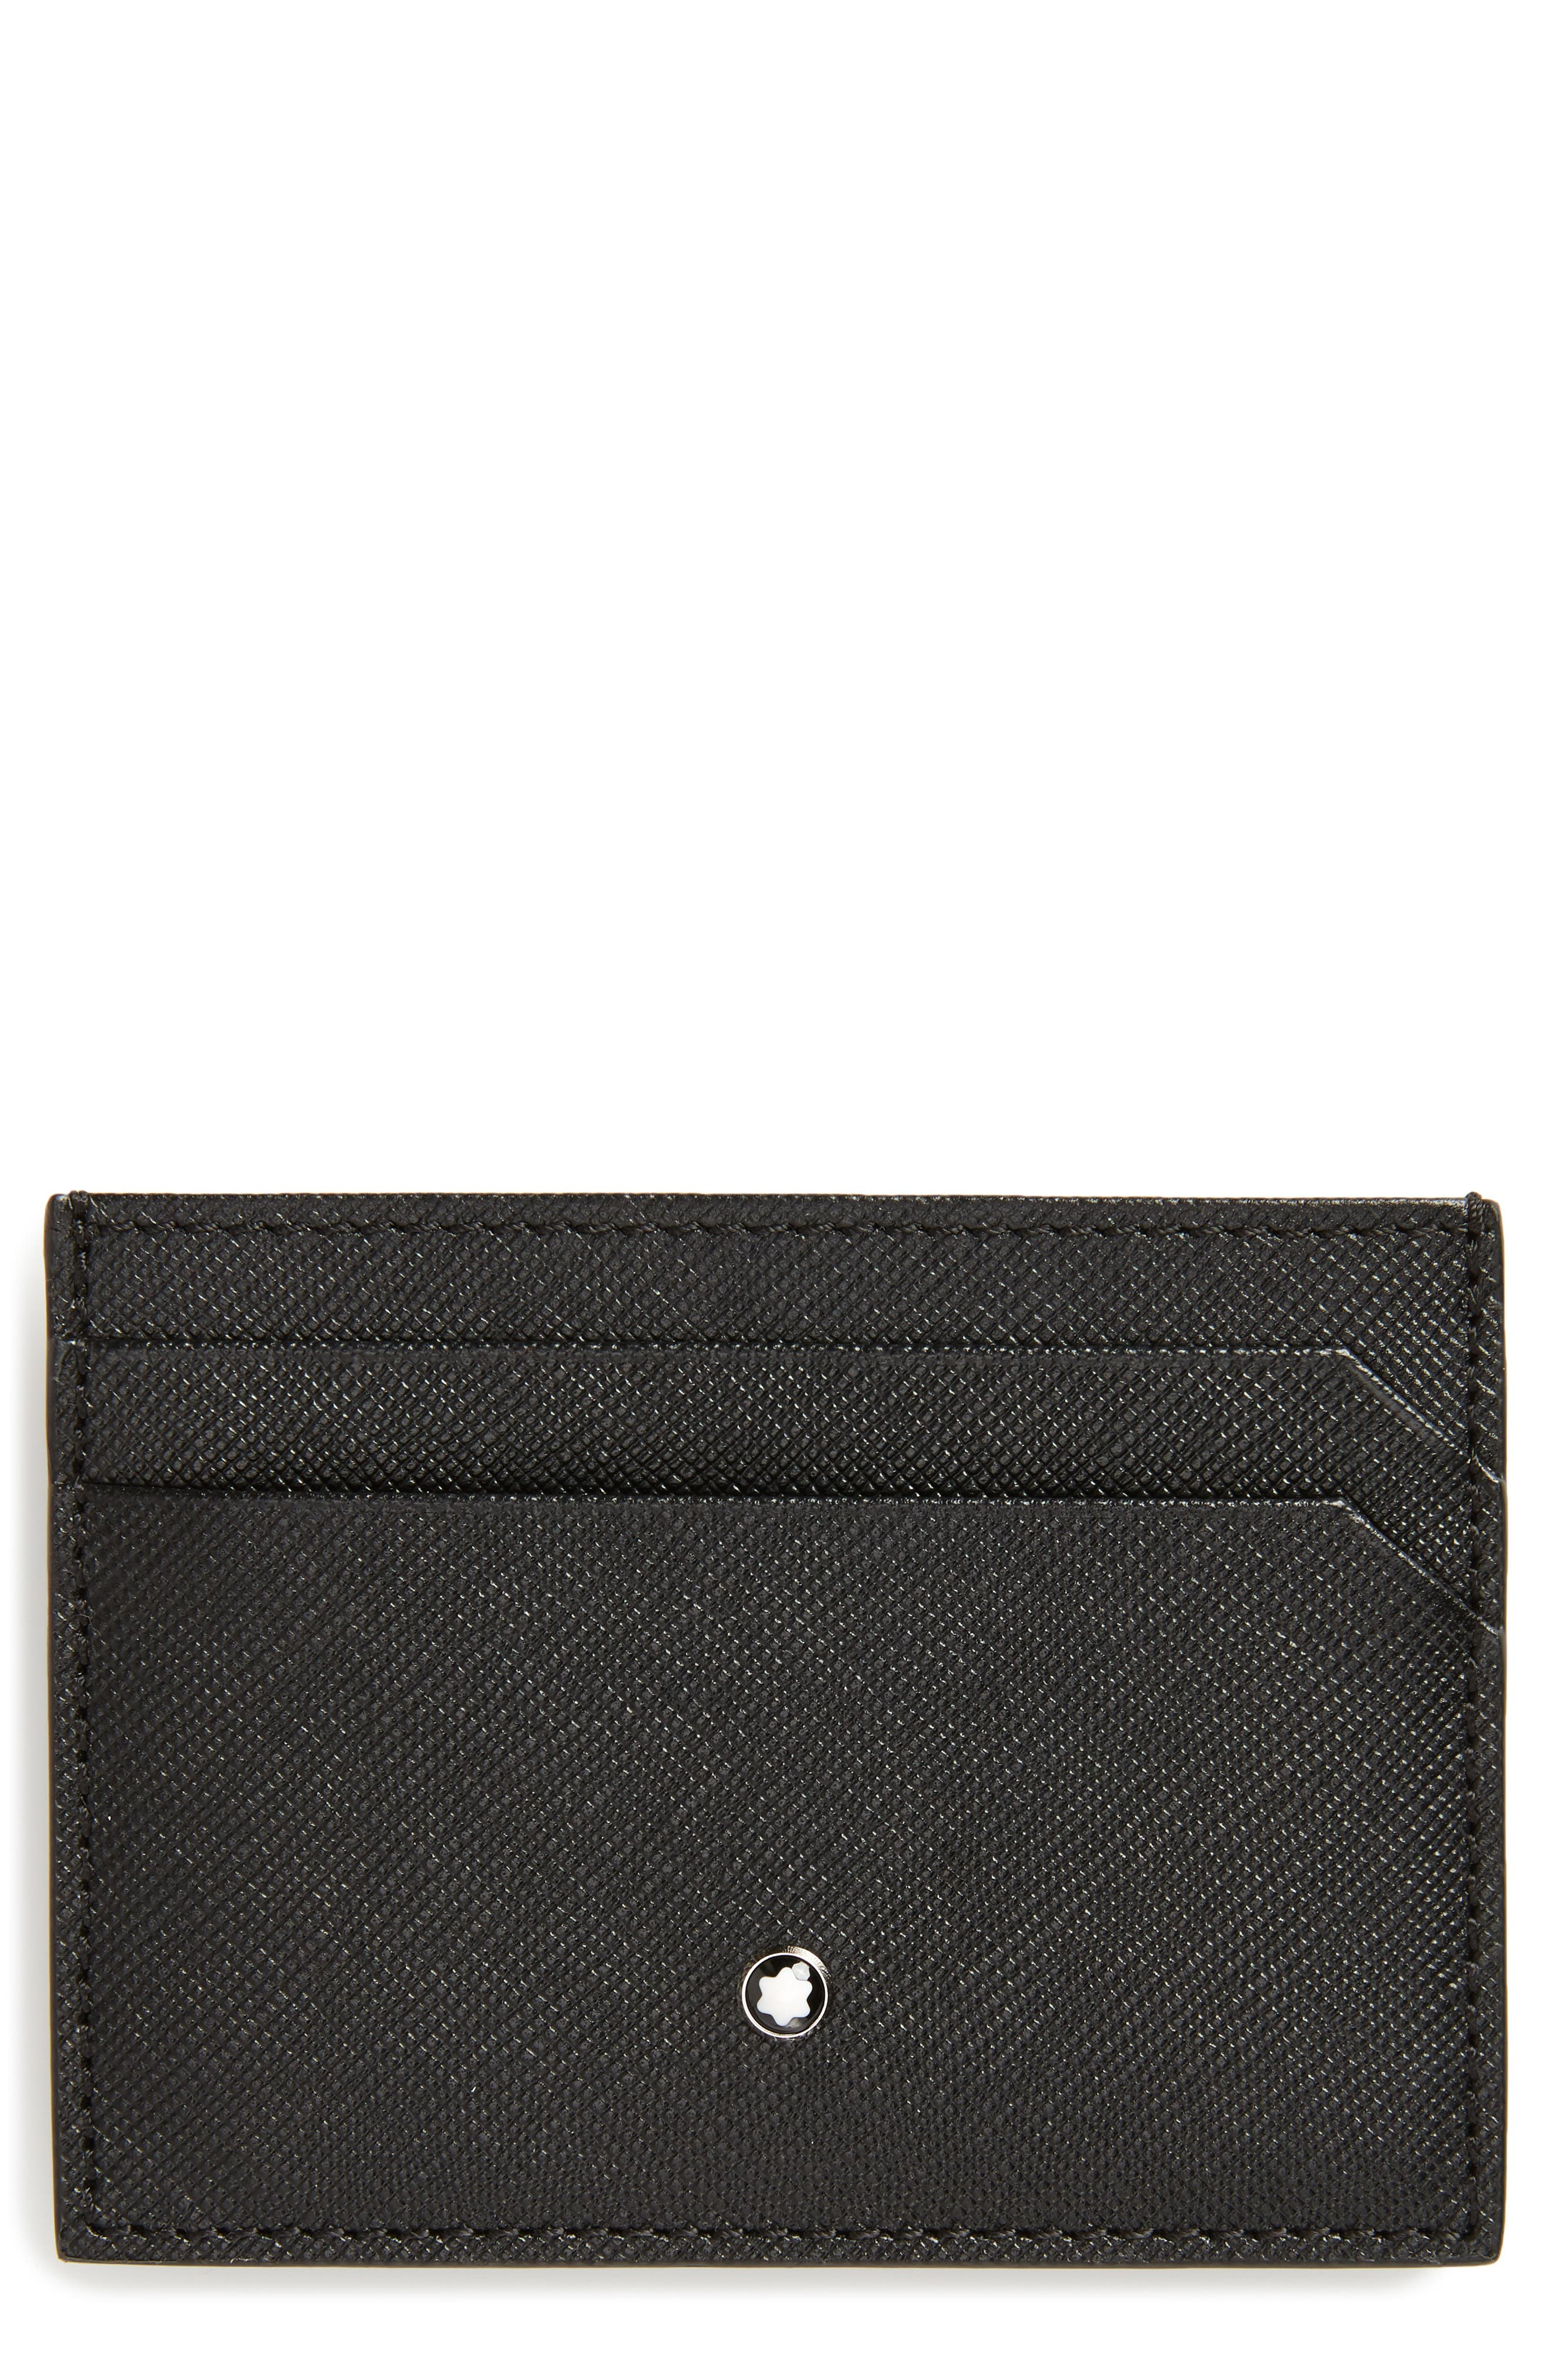 MONTBLANC, Sartorial Leather Card Case, Main thumbnail 1, color, 001